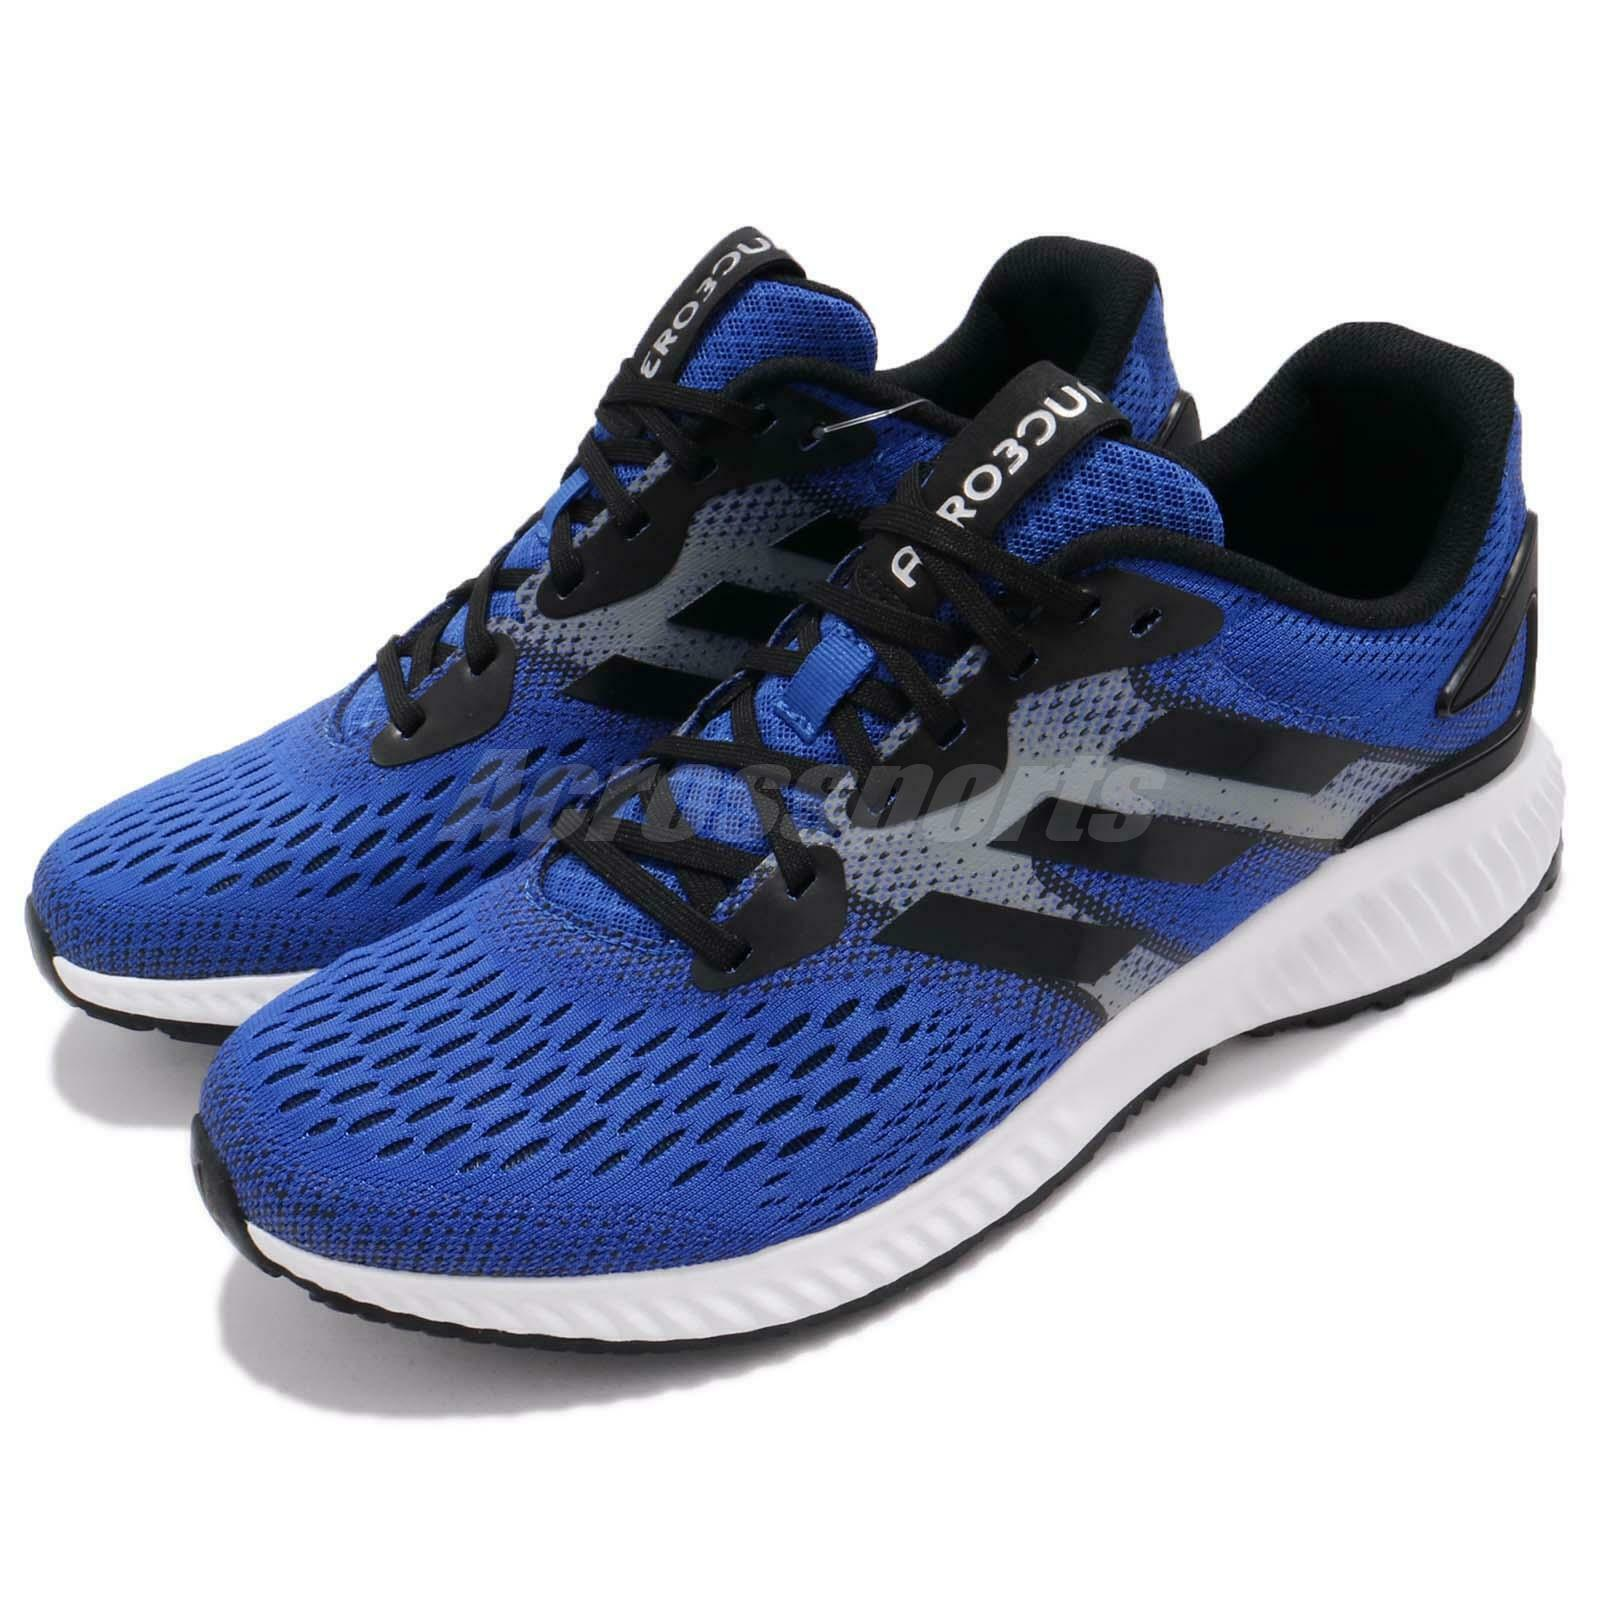 Adidas Aerobounce M bluee Black White Men Running Training shoes Sneakers CG4654